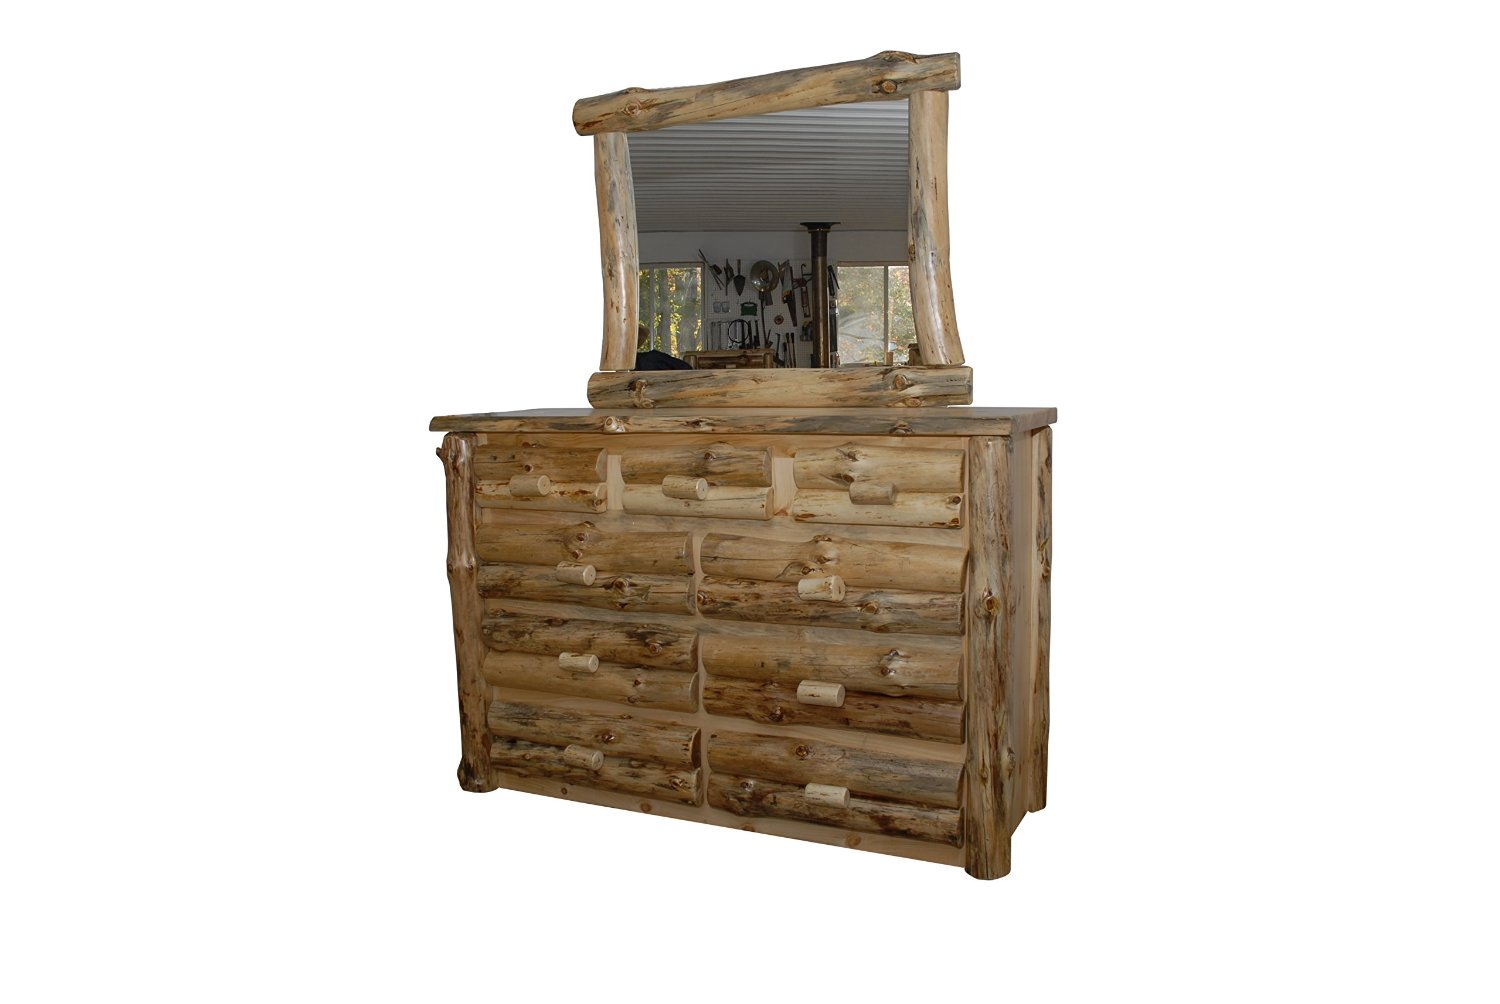 Rustic Pine Half Log Dresser with Mirror FrameAVAILABLE IN 2 SIZES - Amish Made in USA (Clear Varnish, 6 Drawer)